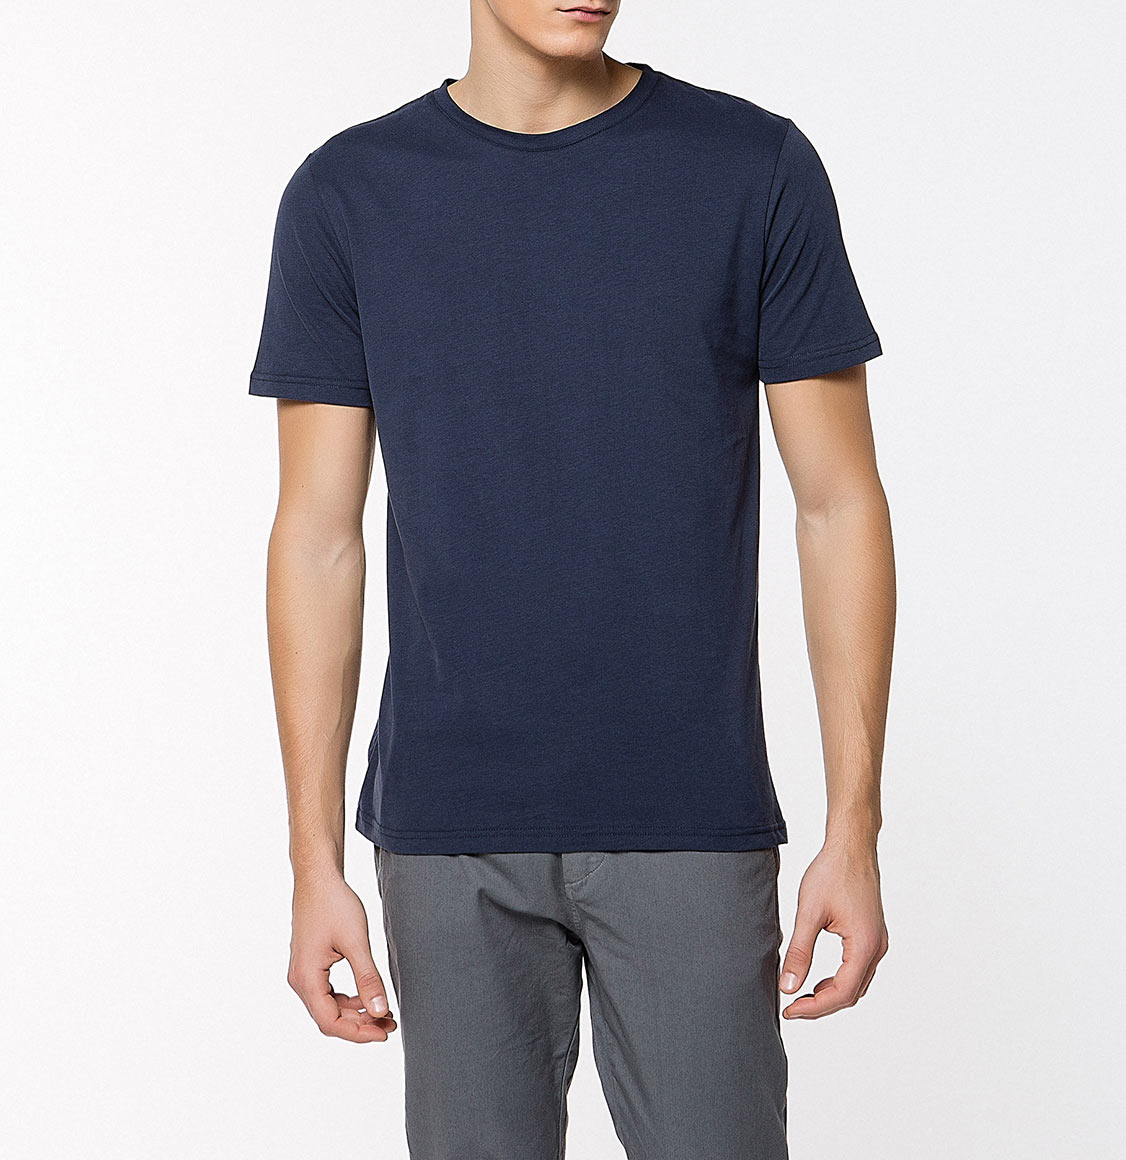 Crew Neck Supima Cotton T-shirt Navy Blue | The Project Garments - Side